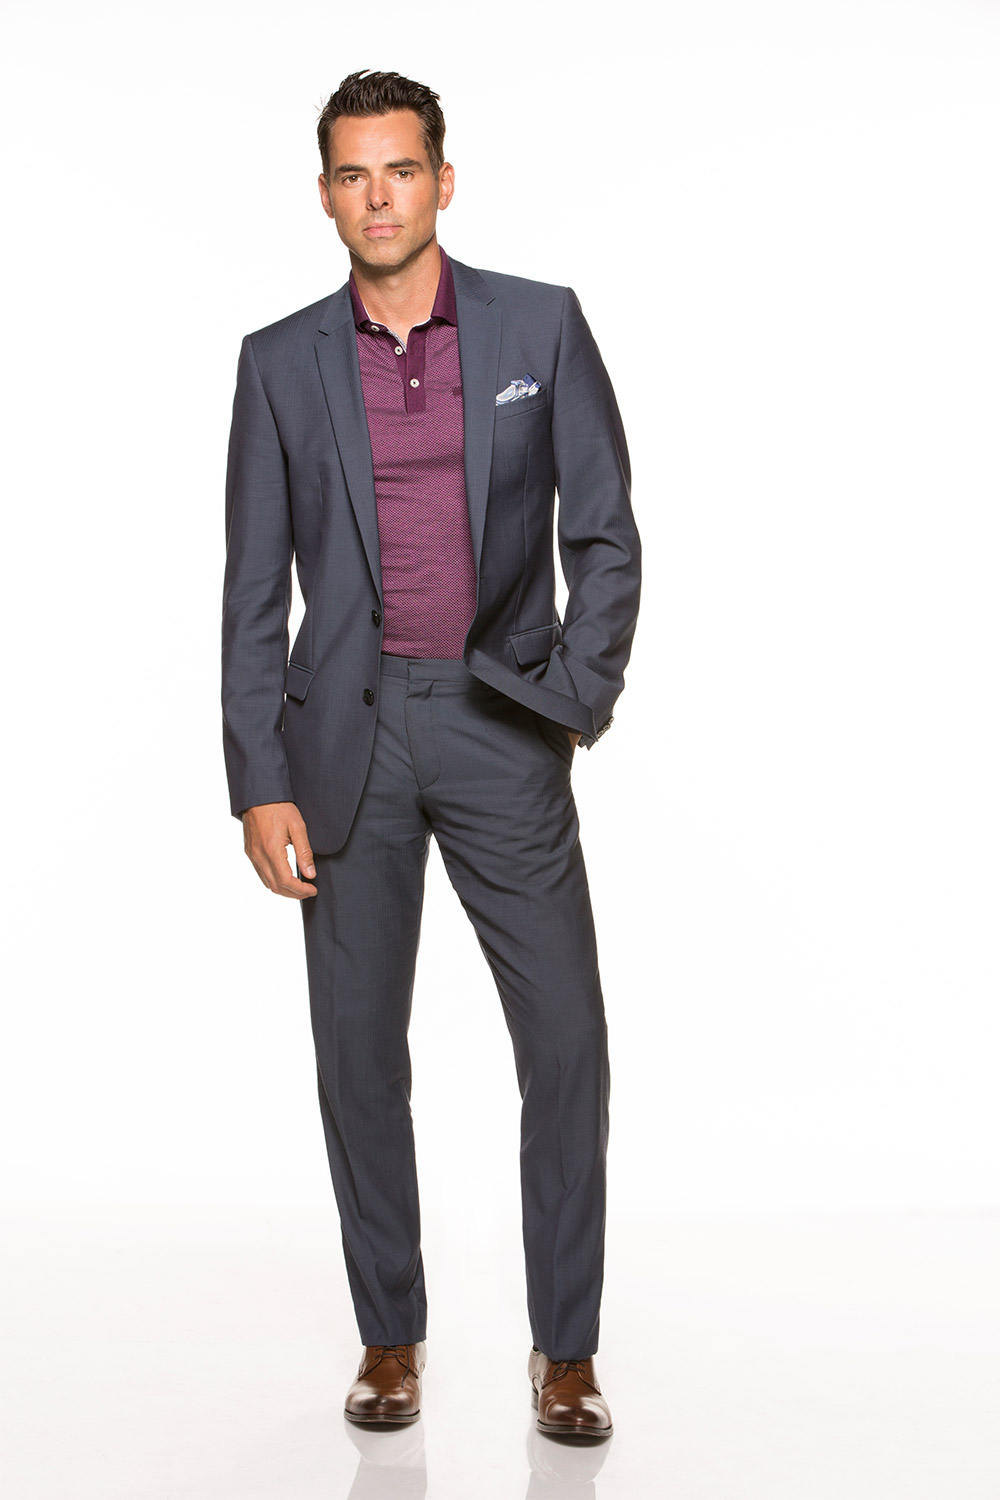 Young and the Restless star Jason Thompson